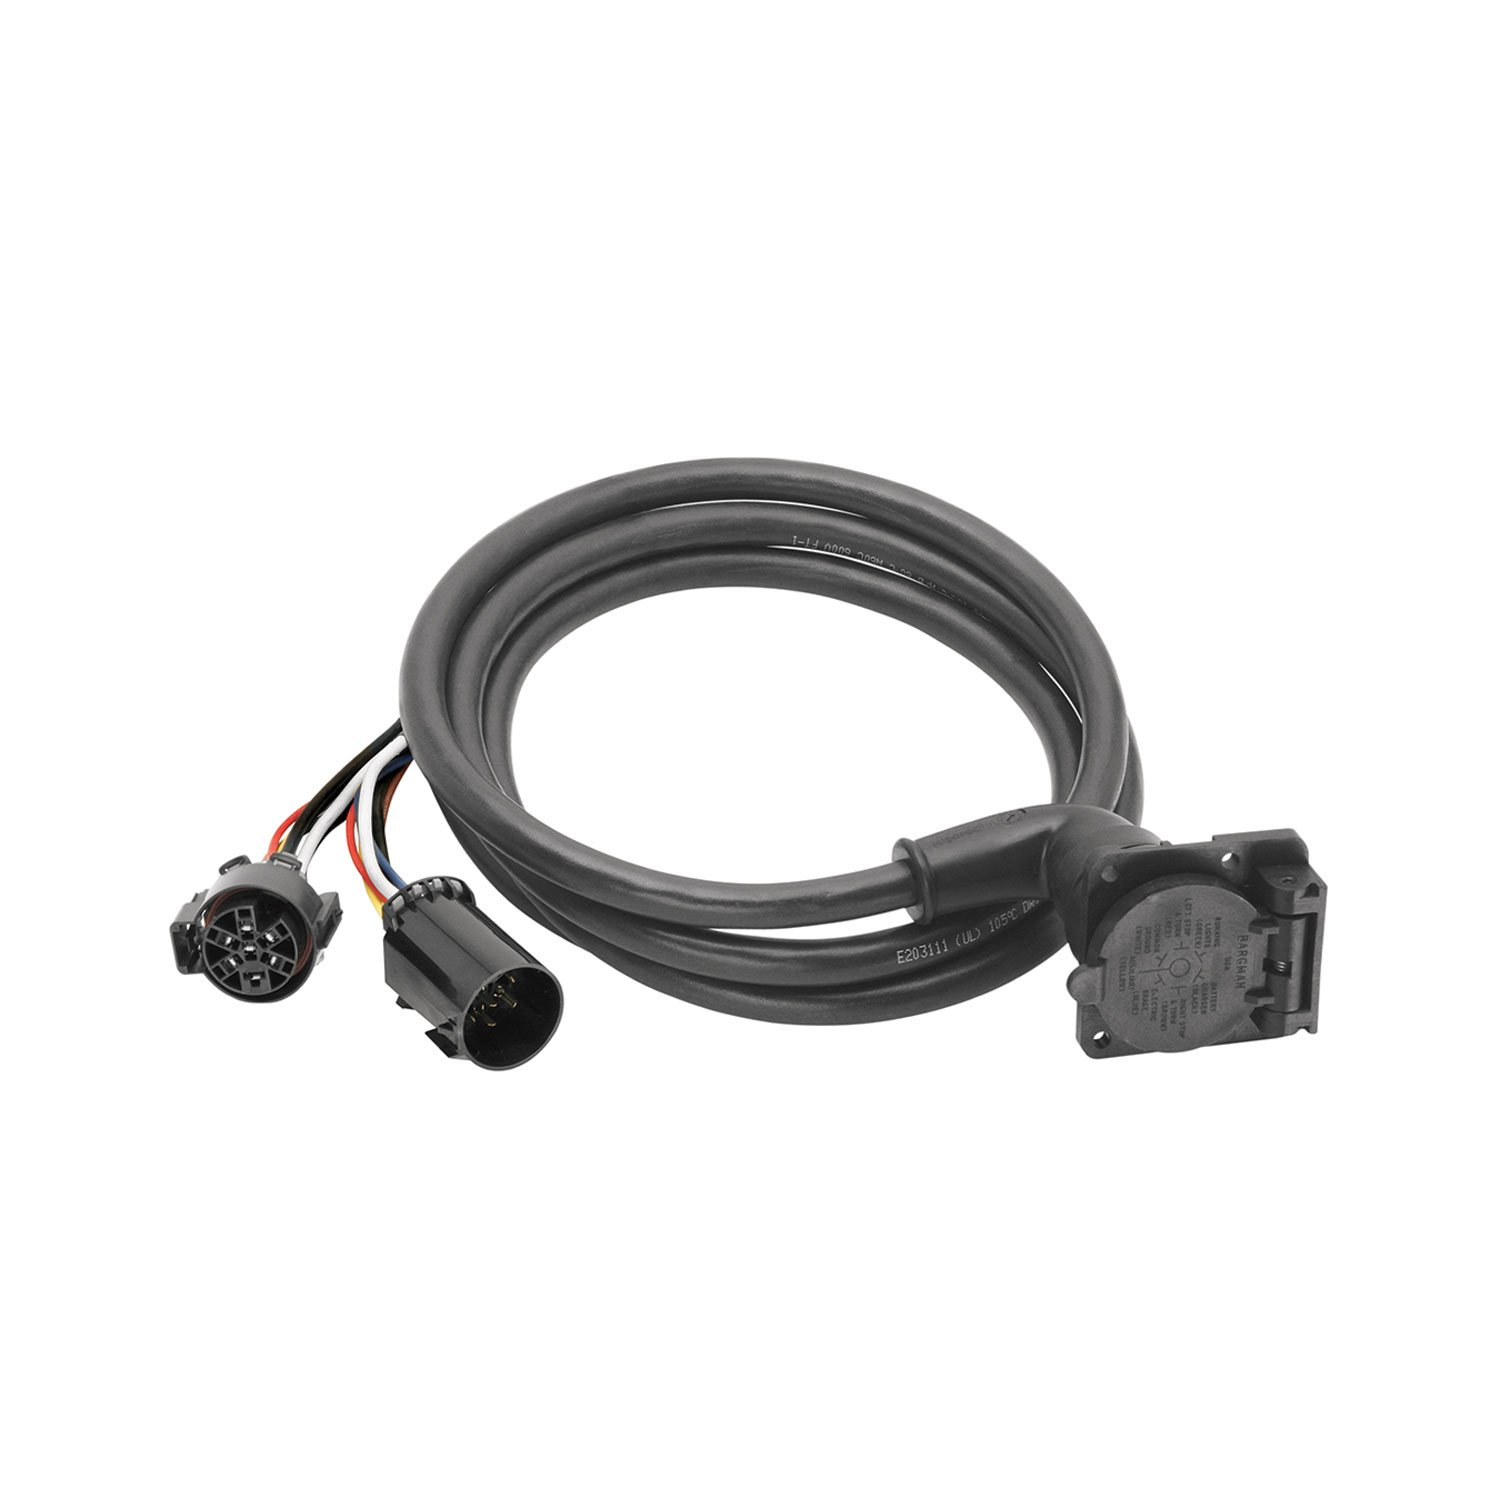 Bargman 51-97-410 7-Way 90° Fifth Wheel Adapter Harness w/ 9' Cable-Dodge, Ford, GM, Toyota